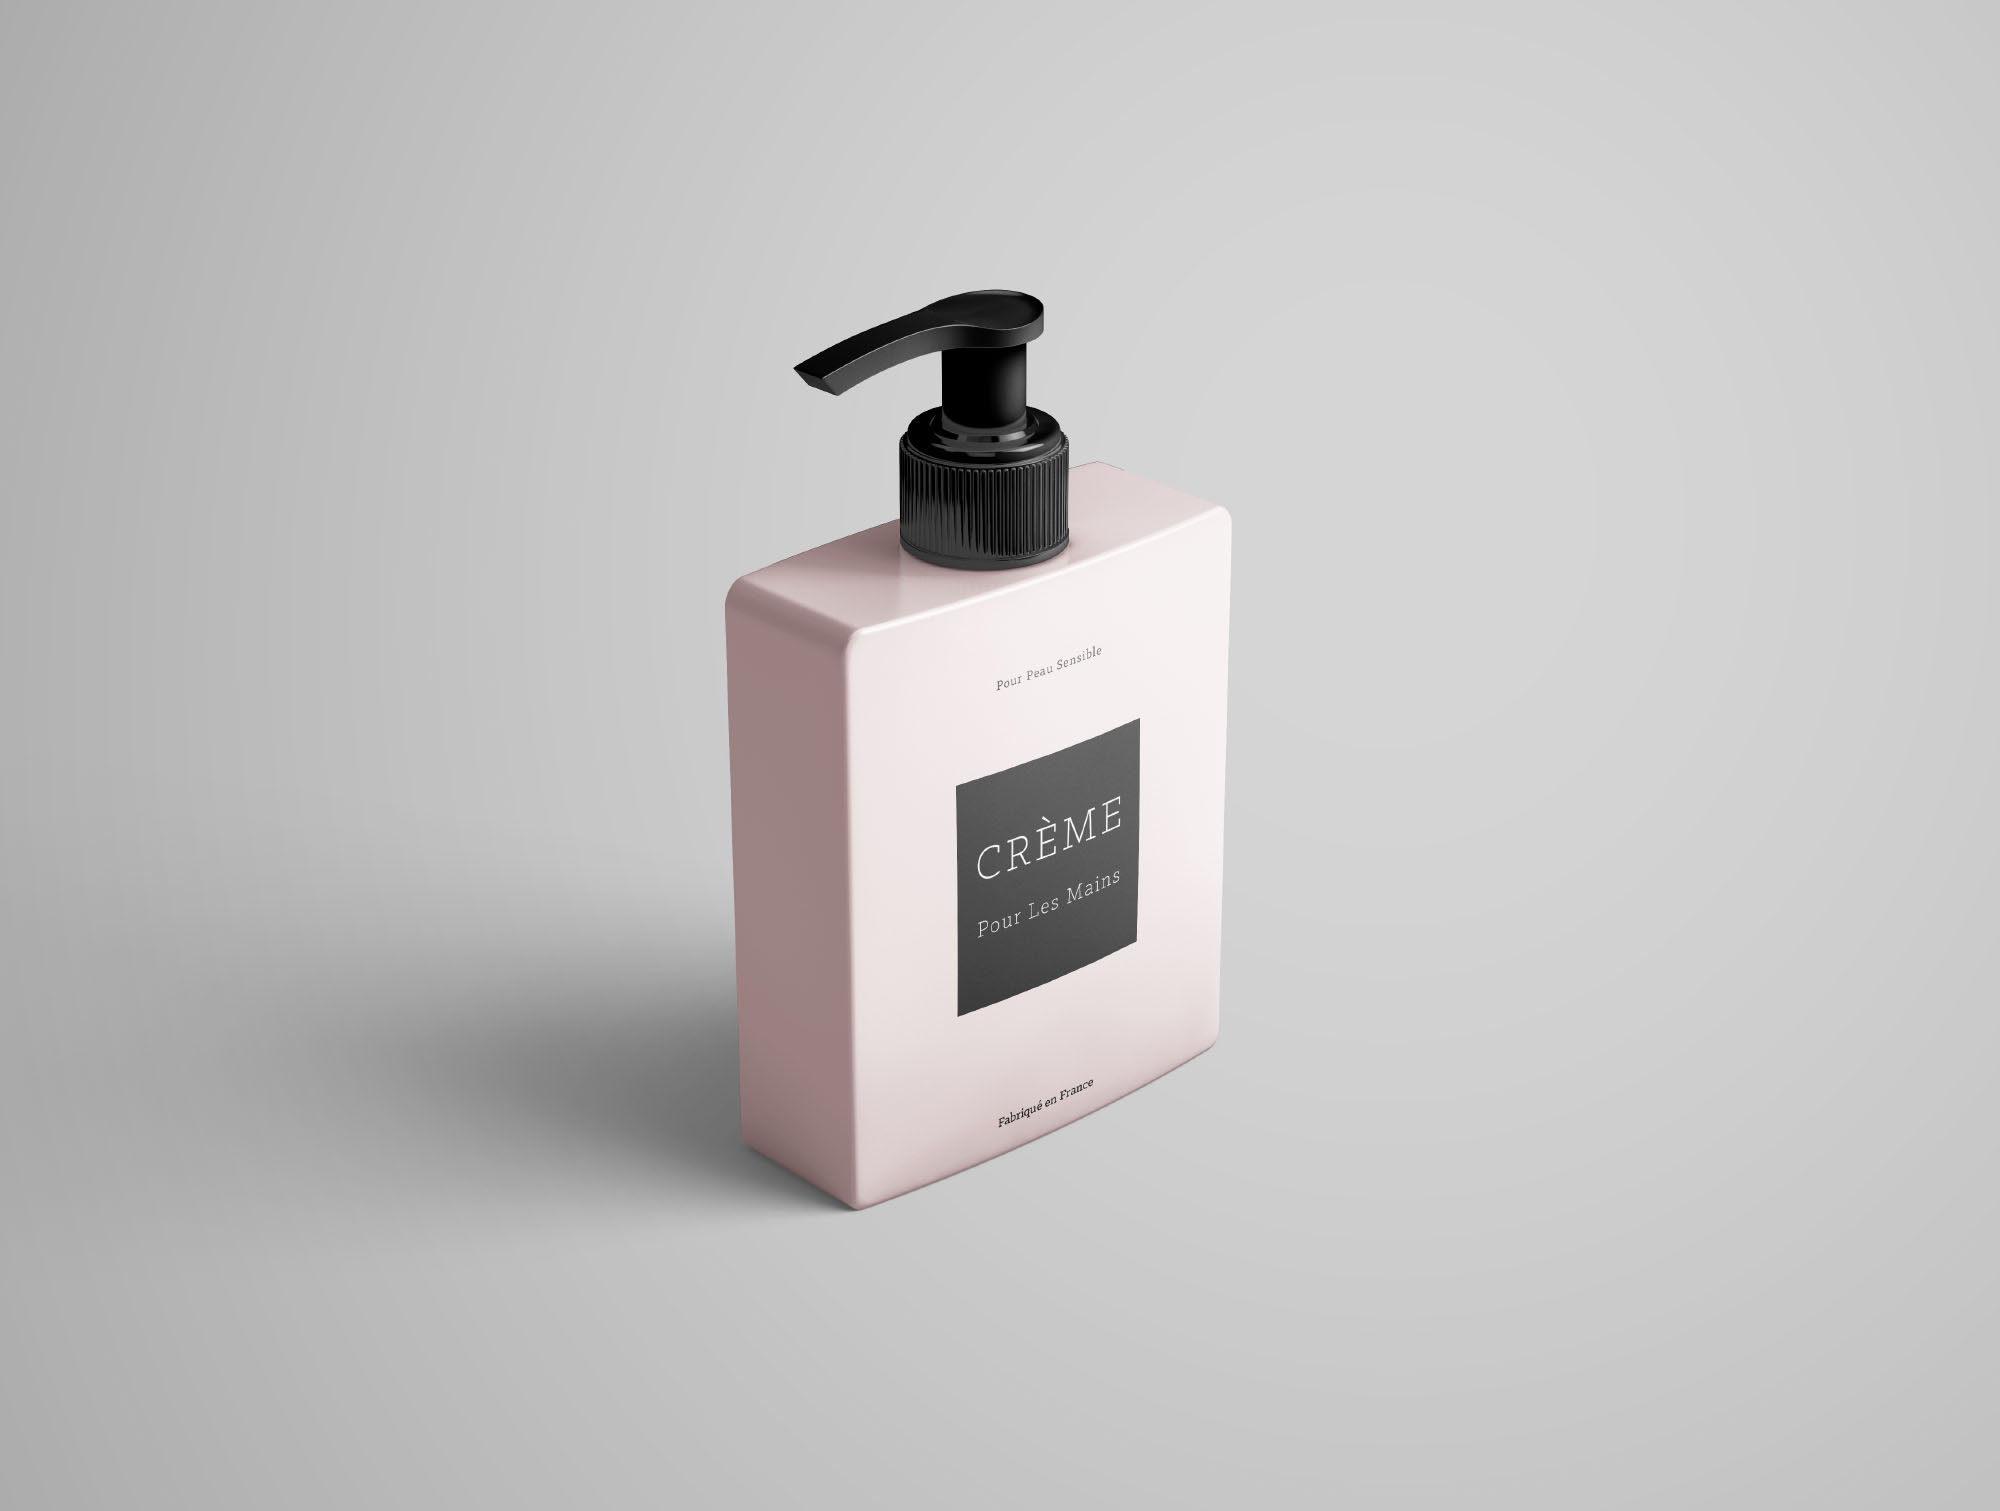 Perspective Cream Bottle Mockup